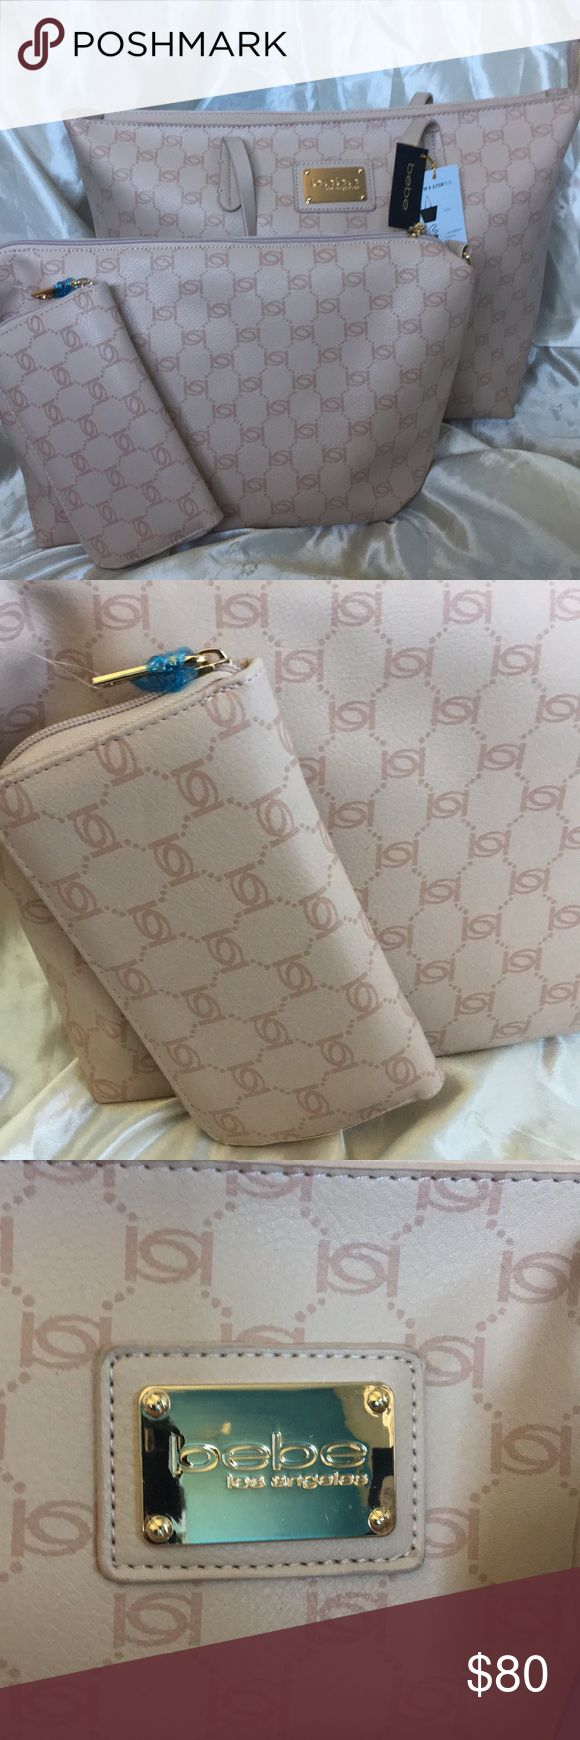 🎀NWT BEBE Loni Logo Blush 3 Piece Tote set BRAND NEW with tag BEBE Loni Logo Blush 3 Piece store Set with huge make up bag and zip up wallet. All Matching Set! Get her now❤️ bebe Bags Totes